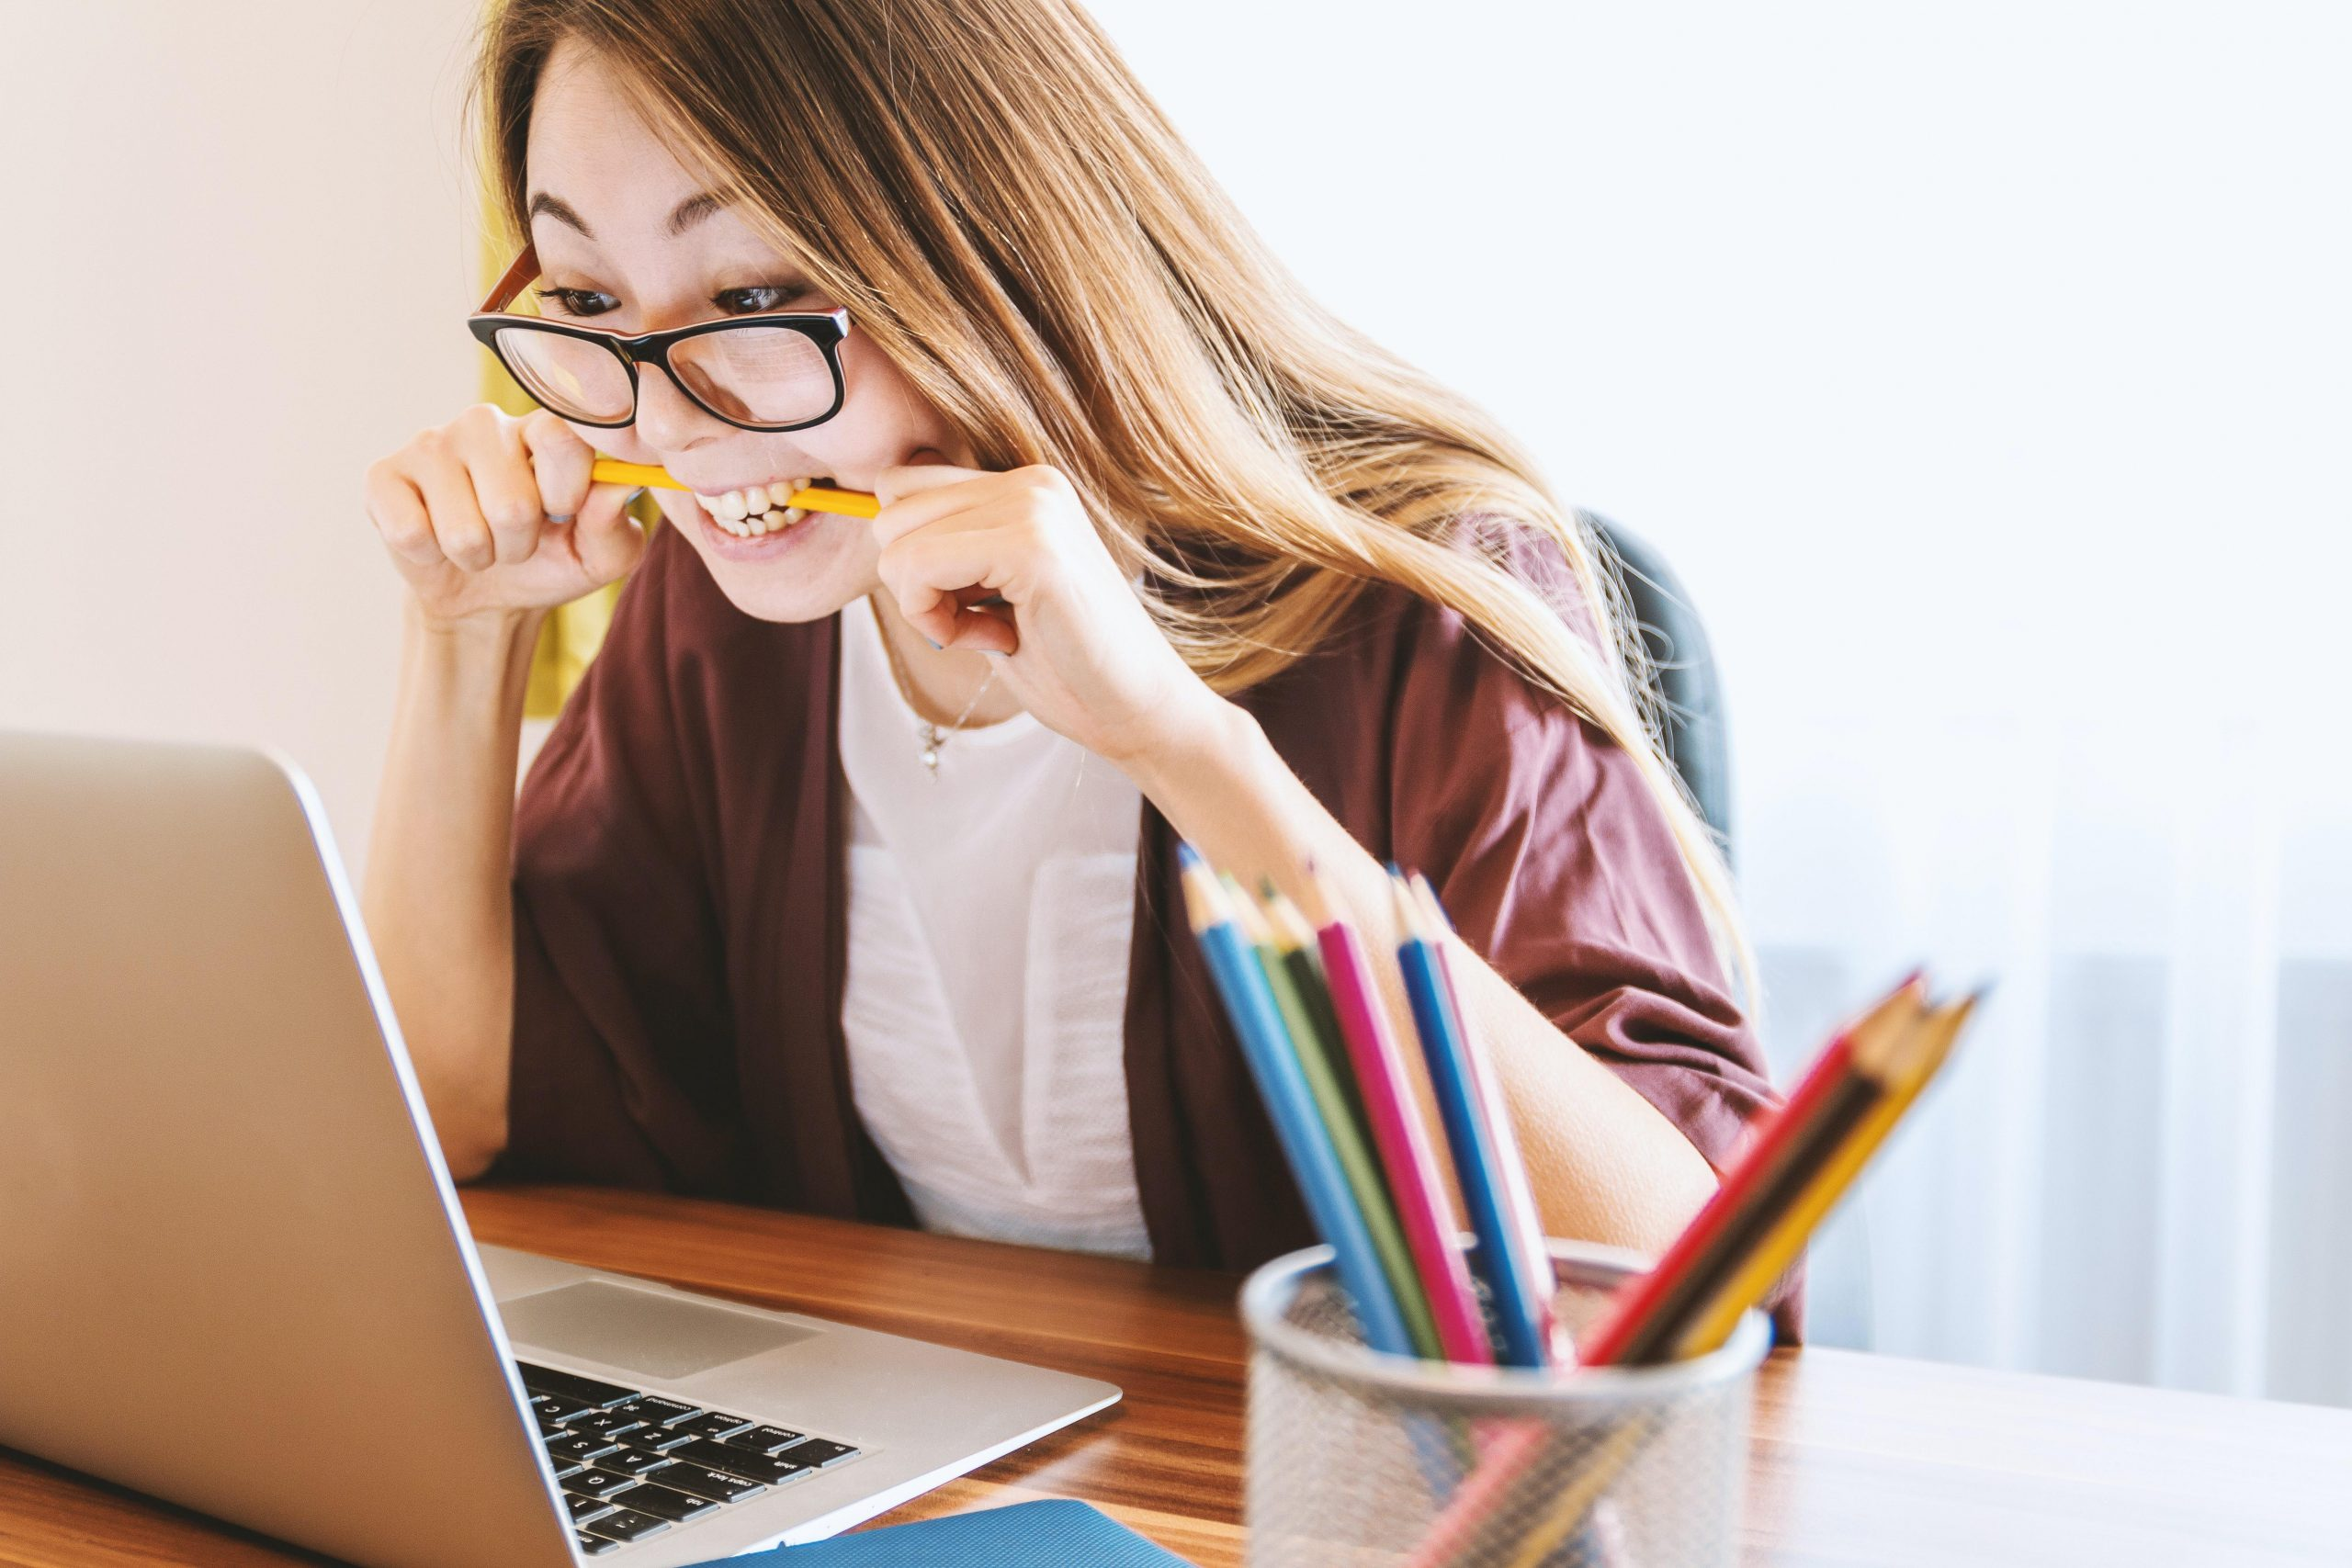 Feeling Overwhelmed: Image of a woman sitting at her computer biting a pencil